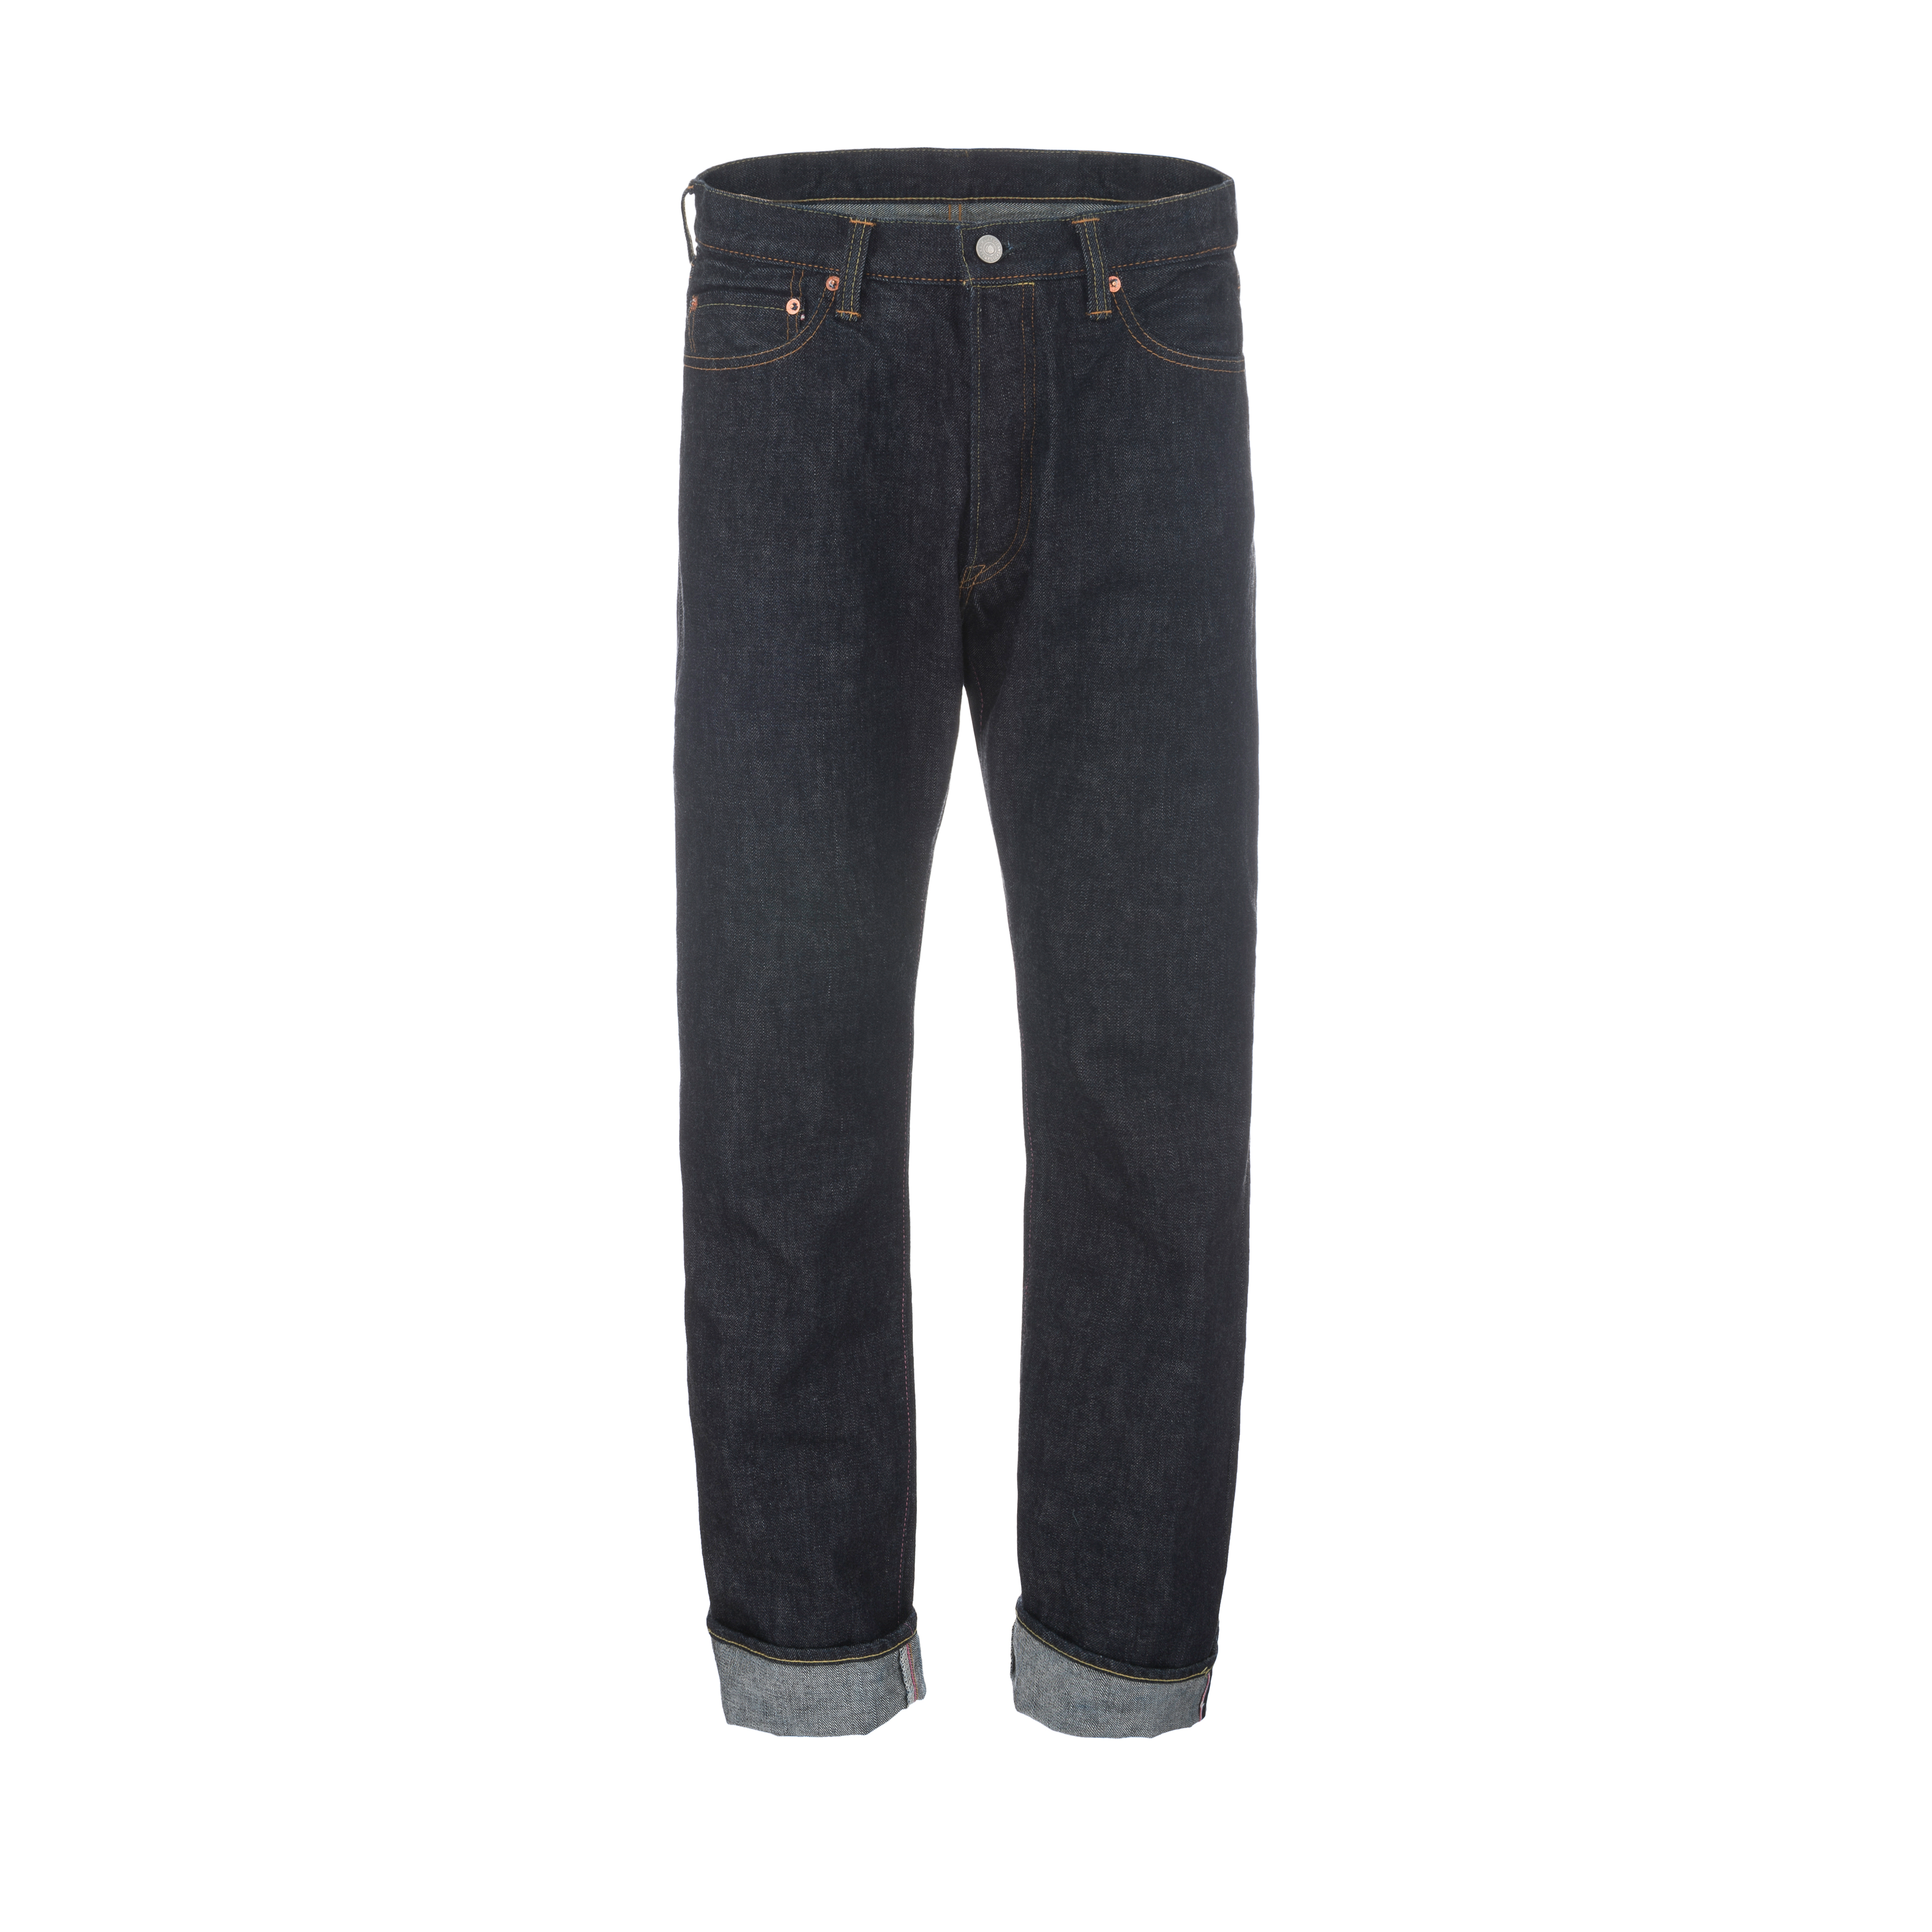 GTB Selvage King Size 15.7oz Raw Denim Jeans Indigo